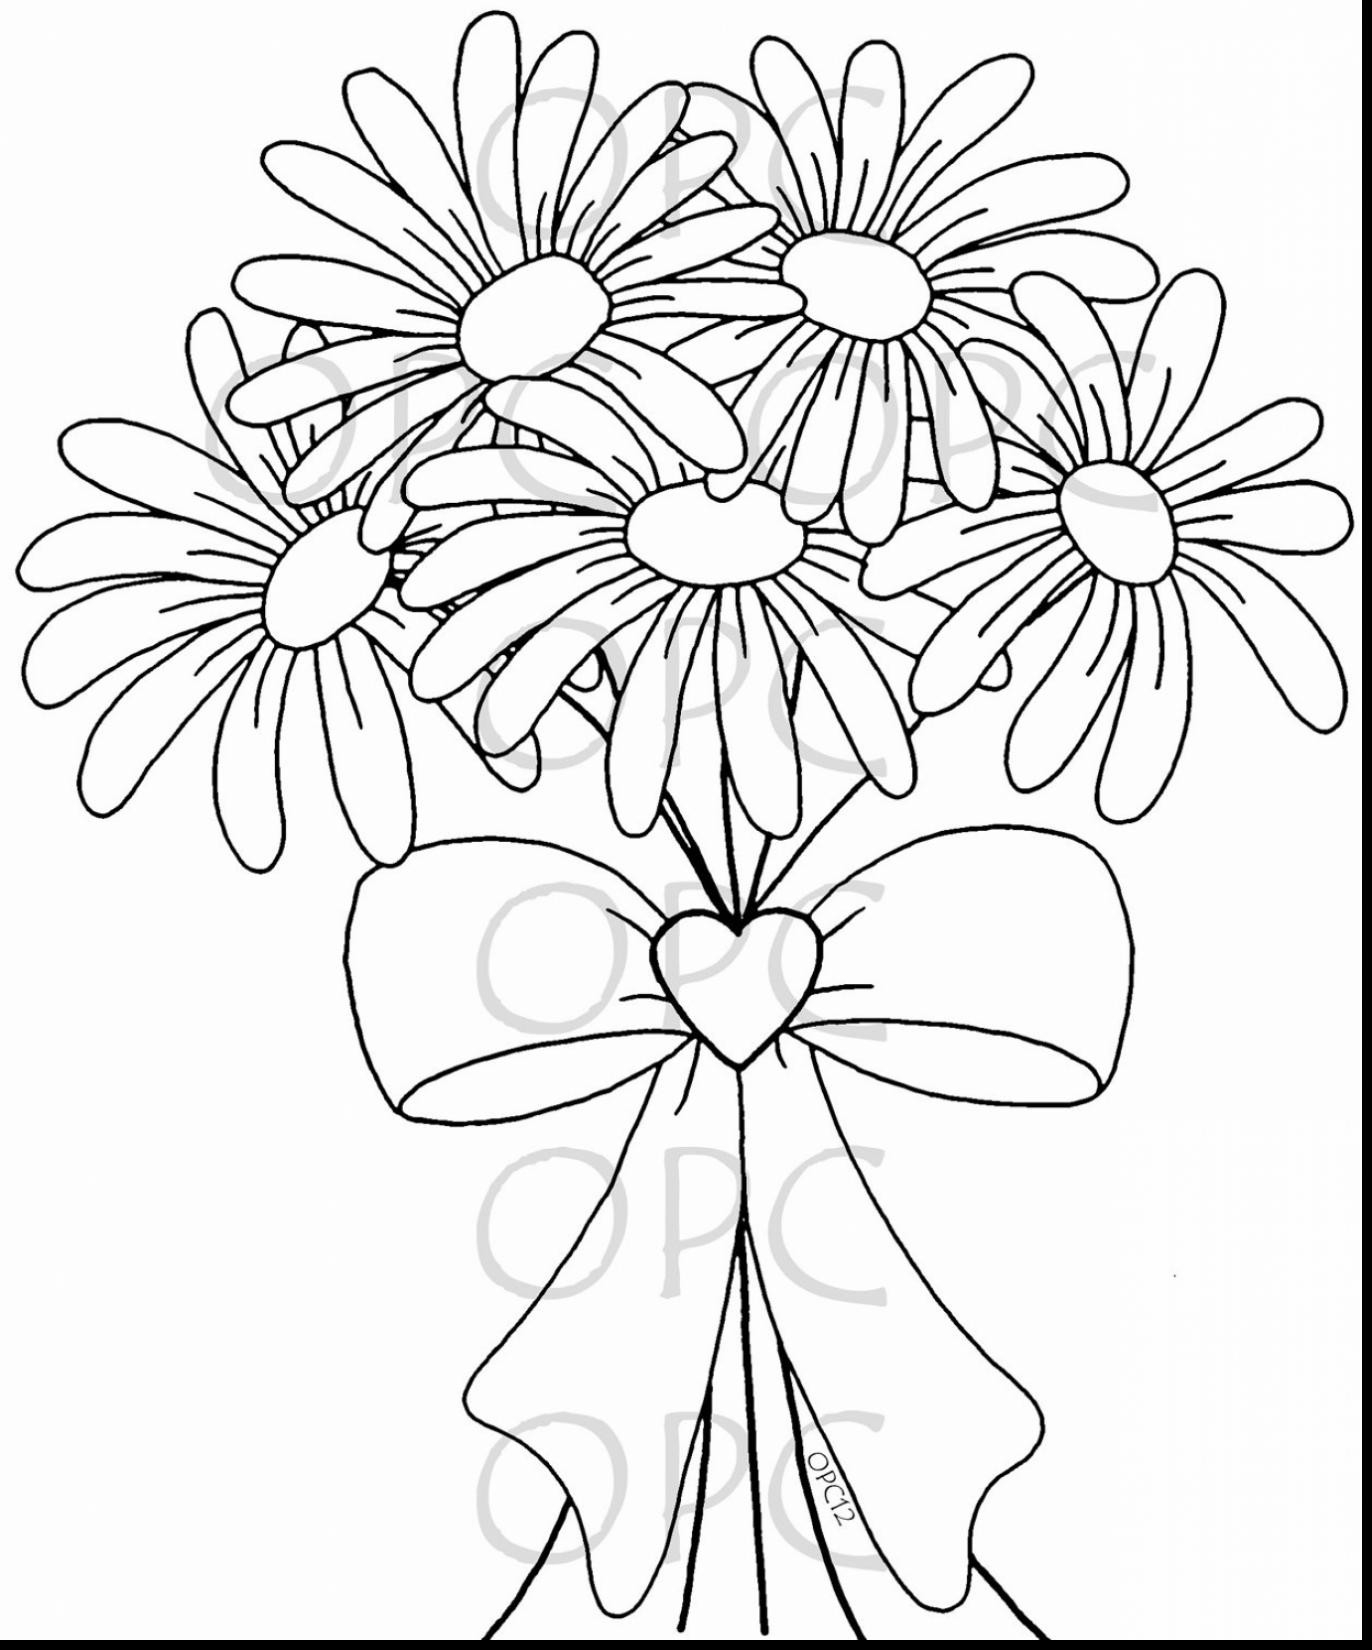 daisy flower colouring pages daisy coloring pages colouring pages daisy flower